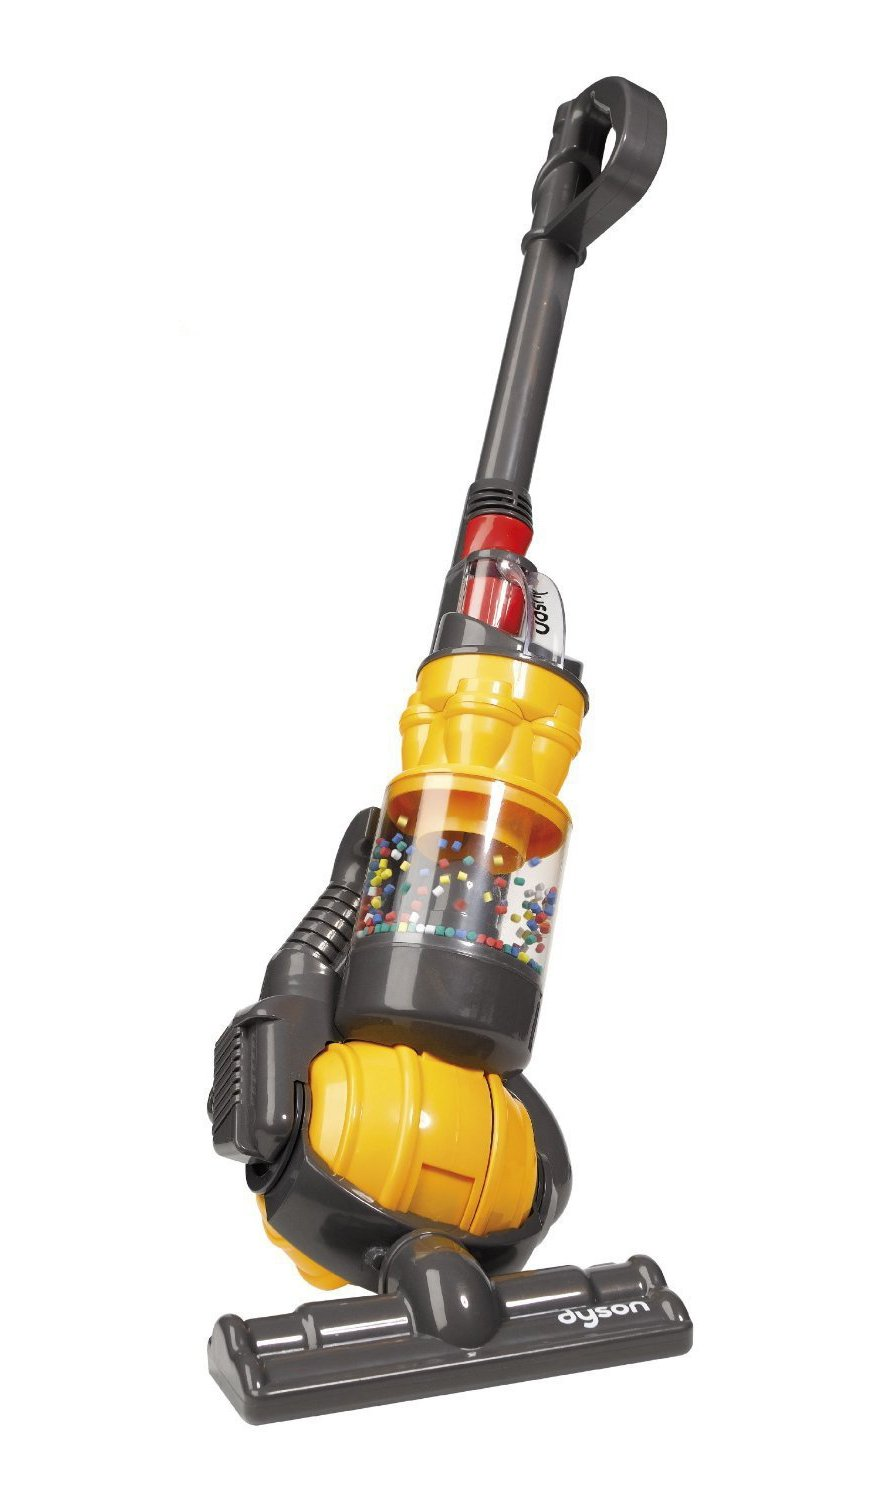 Dyson Toy Vacuum- best gifts for kids